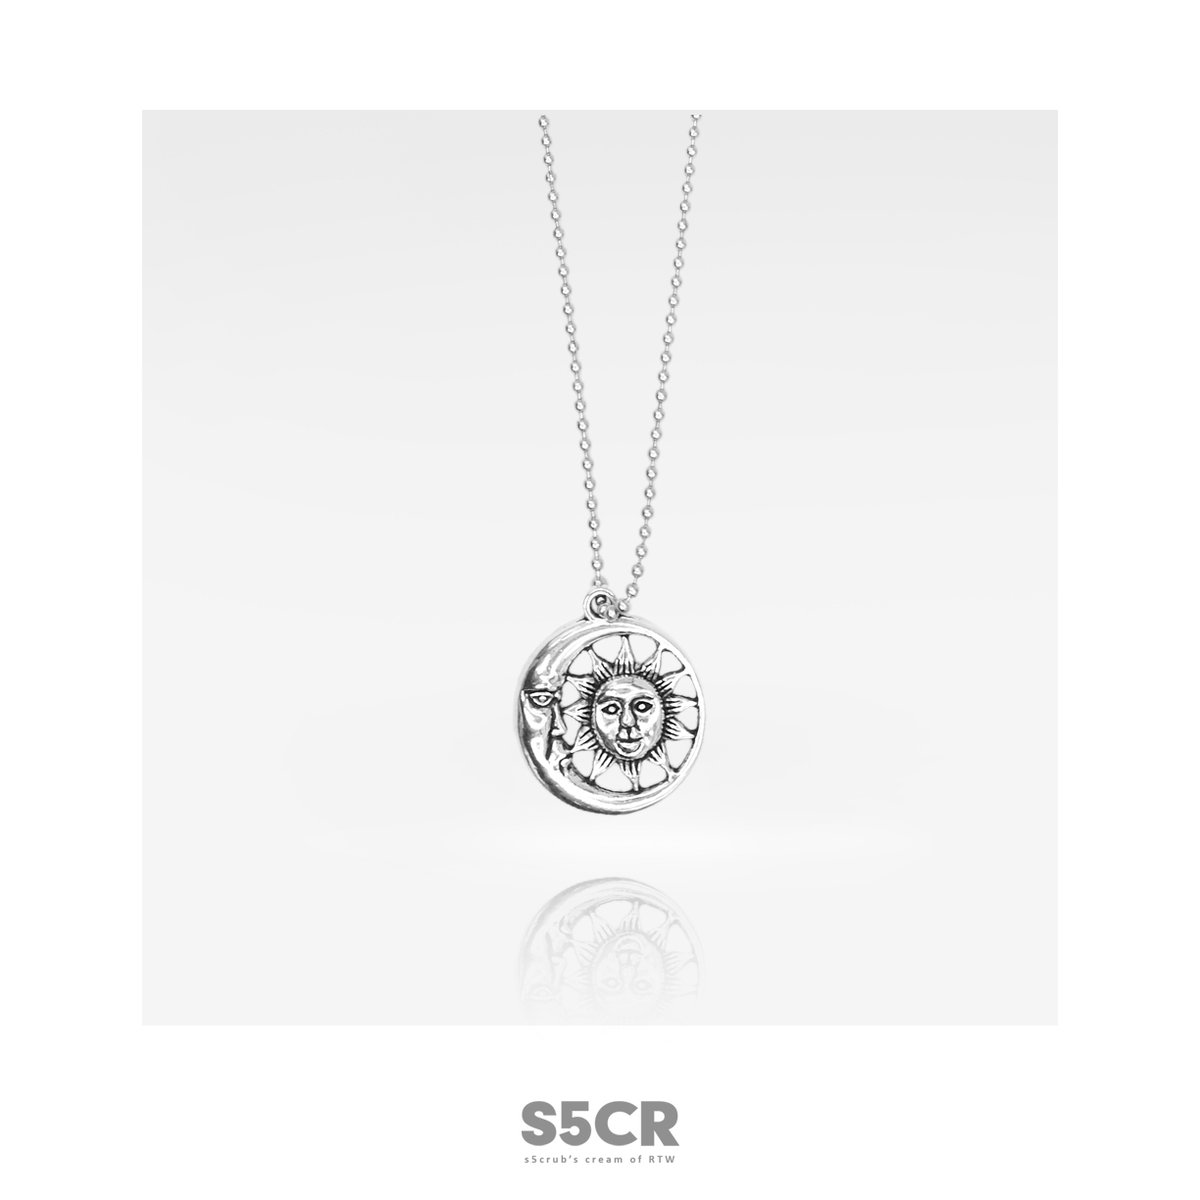 usongs Custom 5/moon and wave beads Small round beads silver moon necklace pendant everyday easy take stable